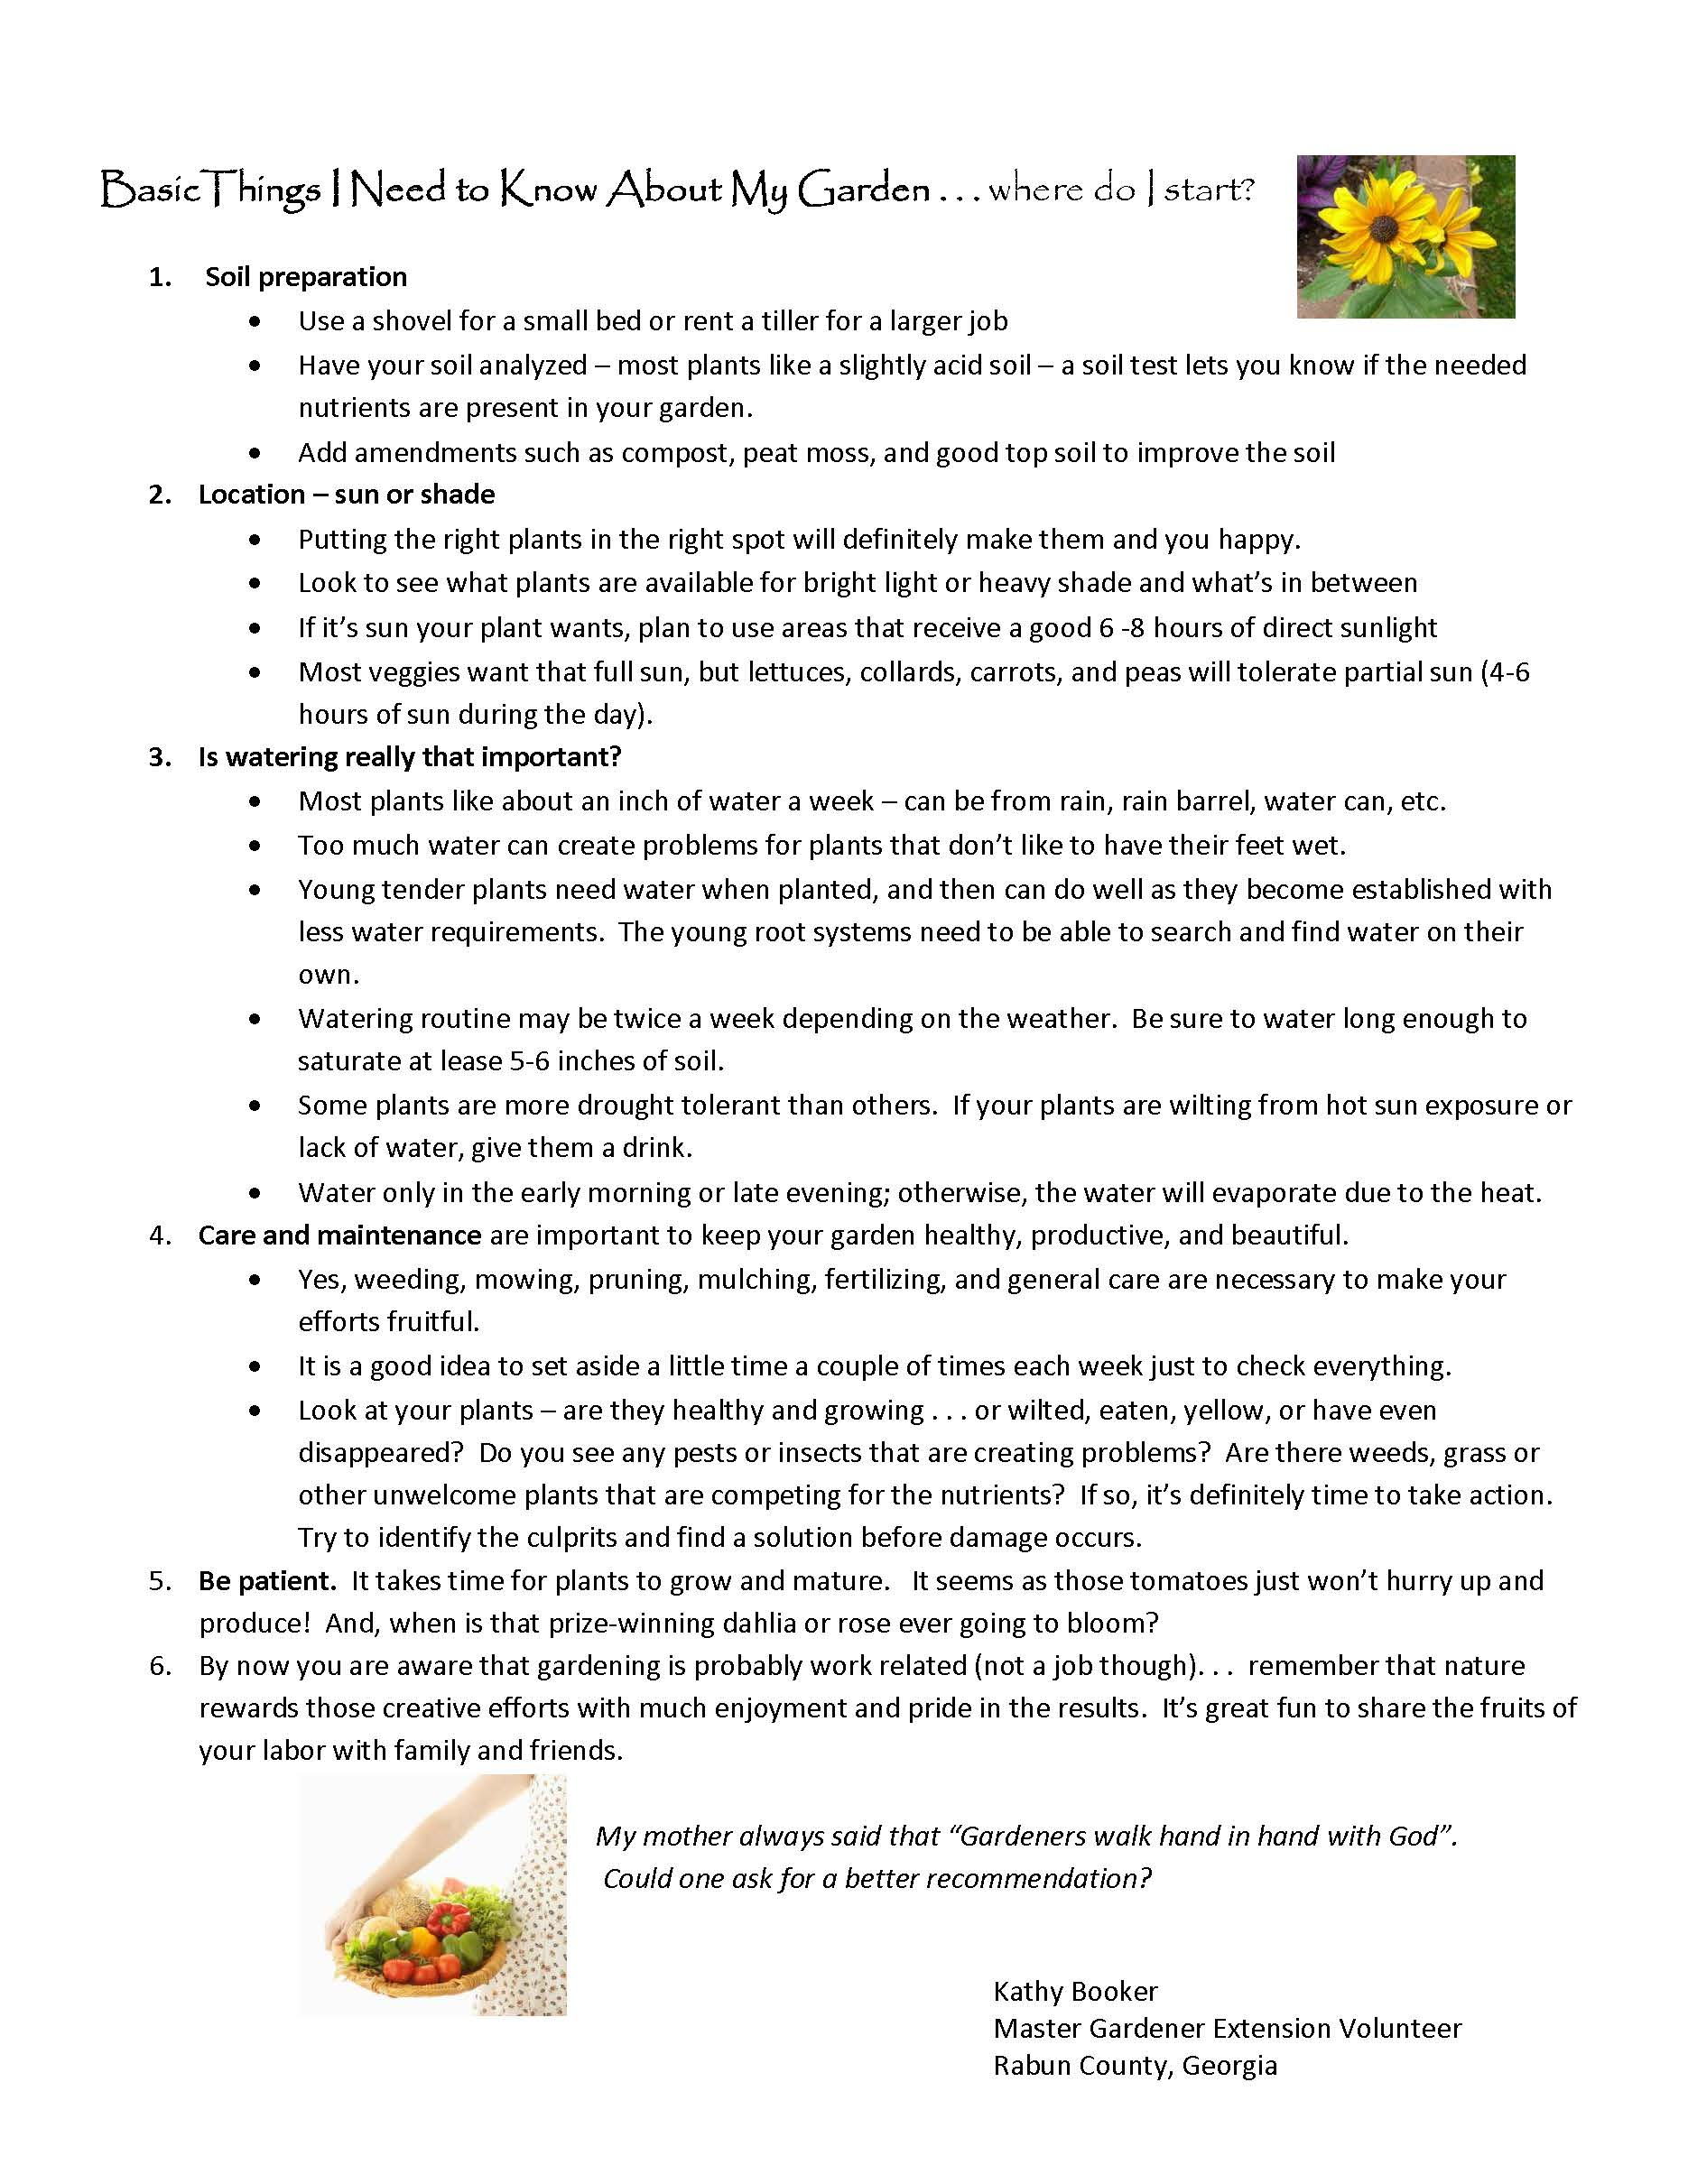 Things I Need to Know About My Garden - Basic Gardening Concepts.jpg